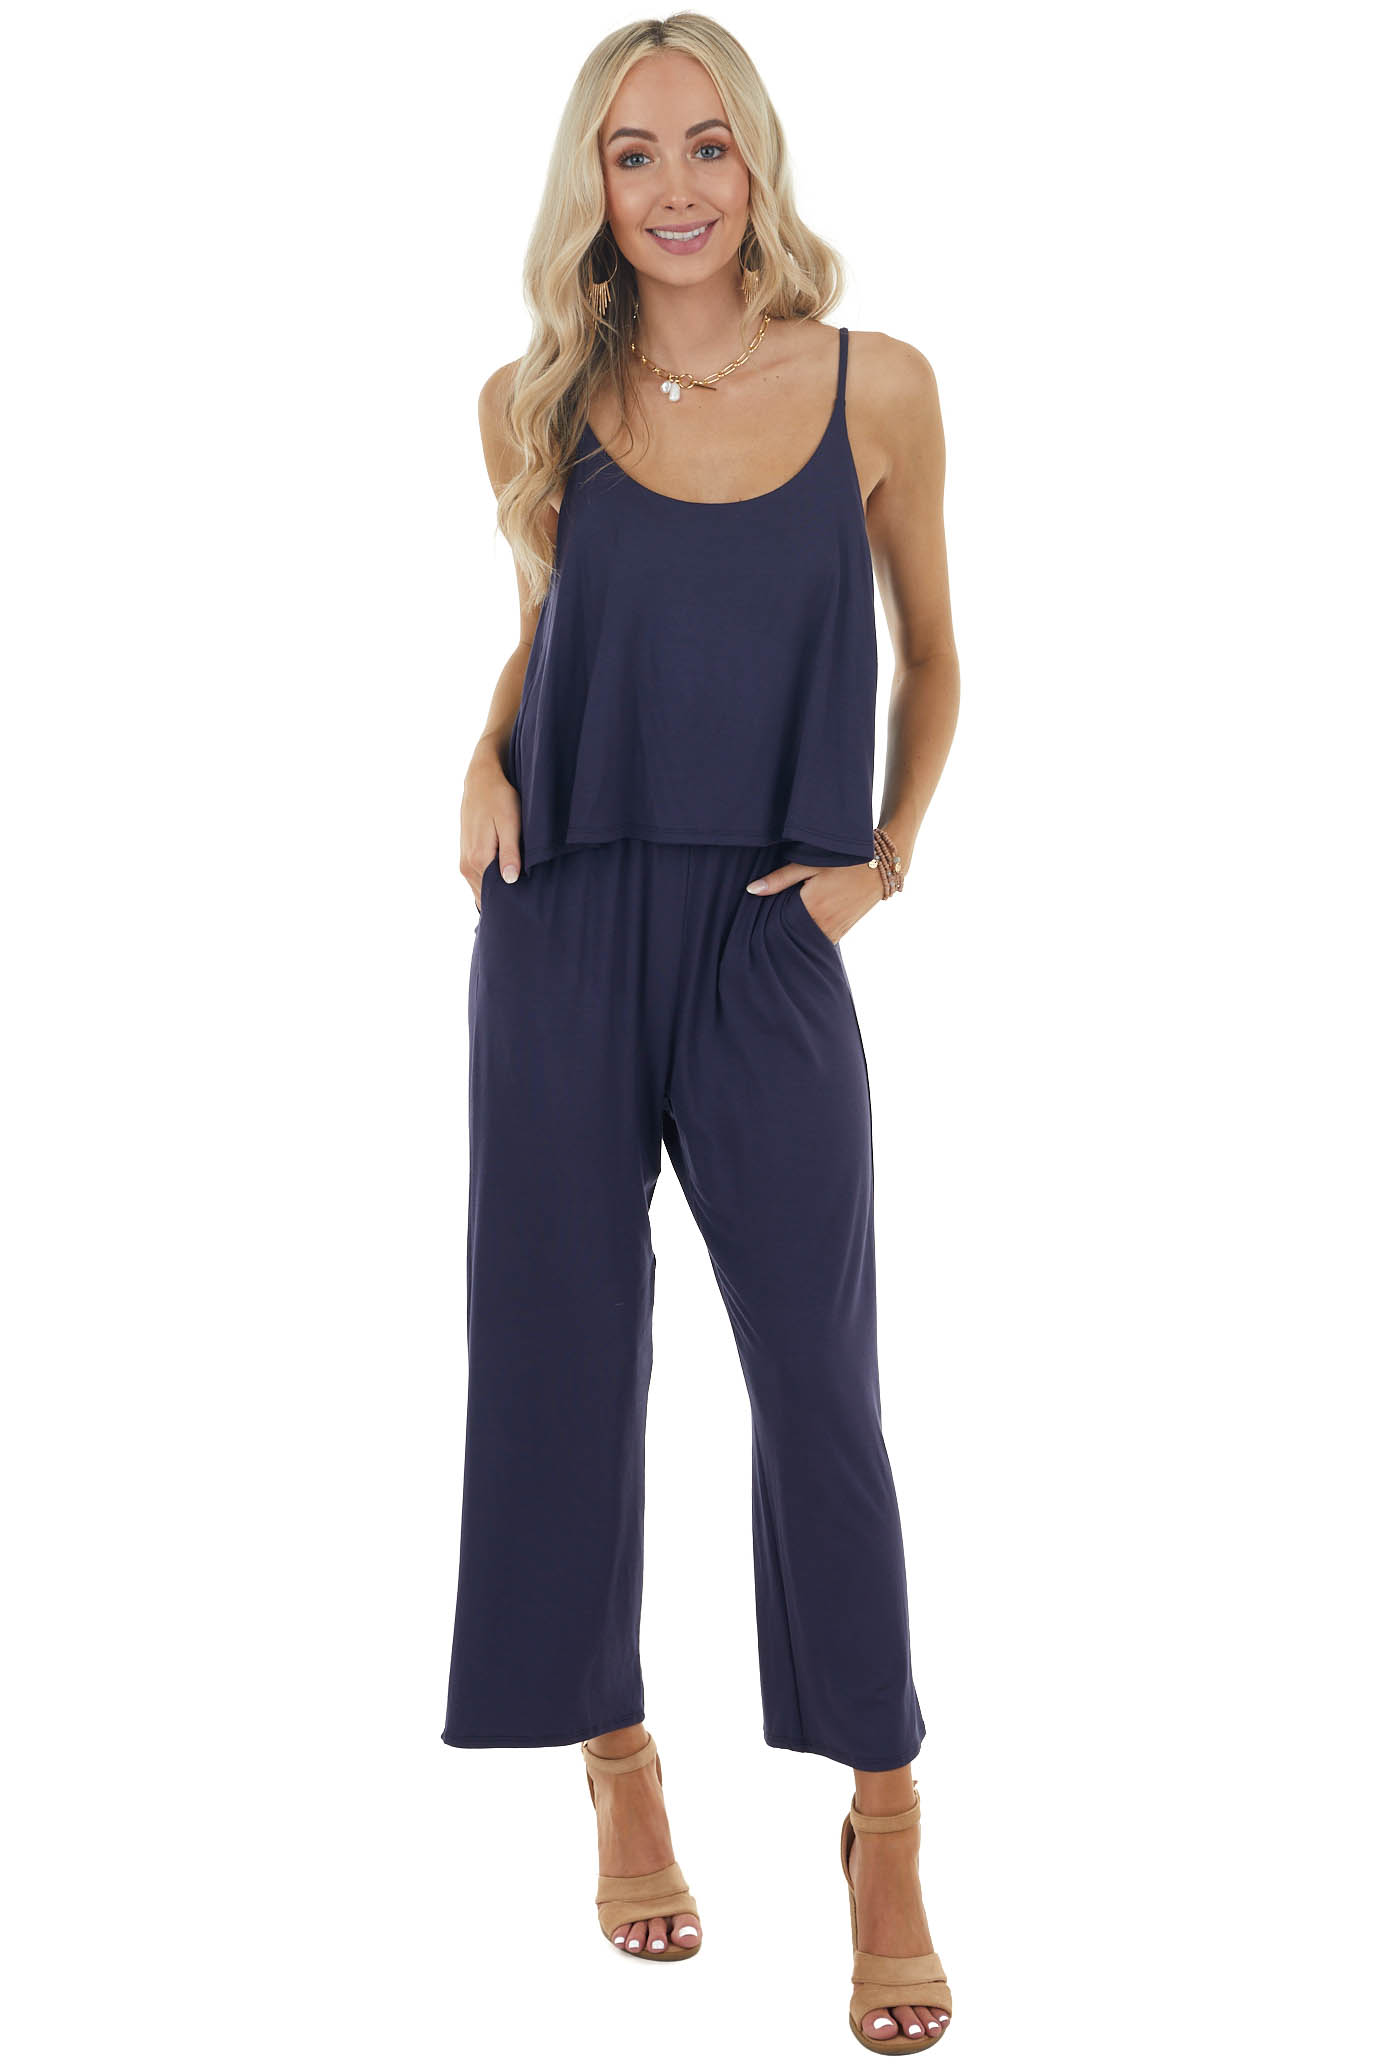 Navy Blue Sleeveless Overlaying Knit Jumpsuit with Pockets